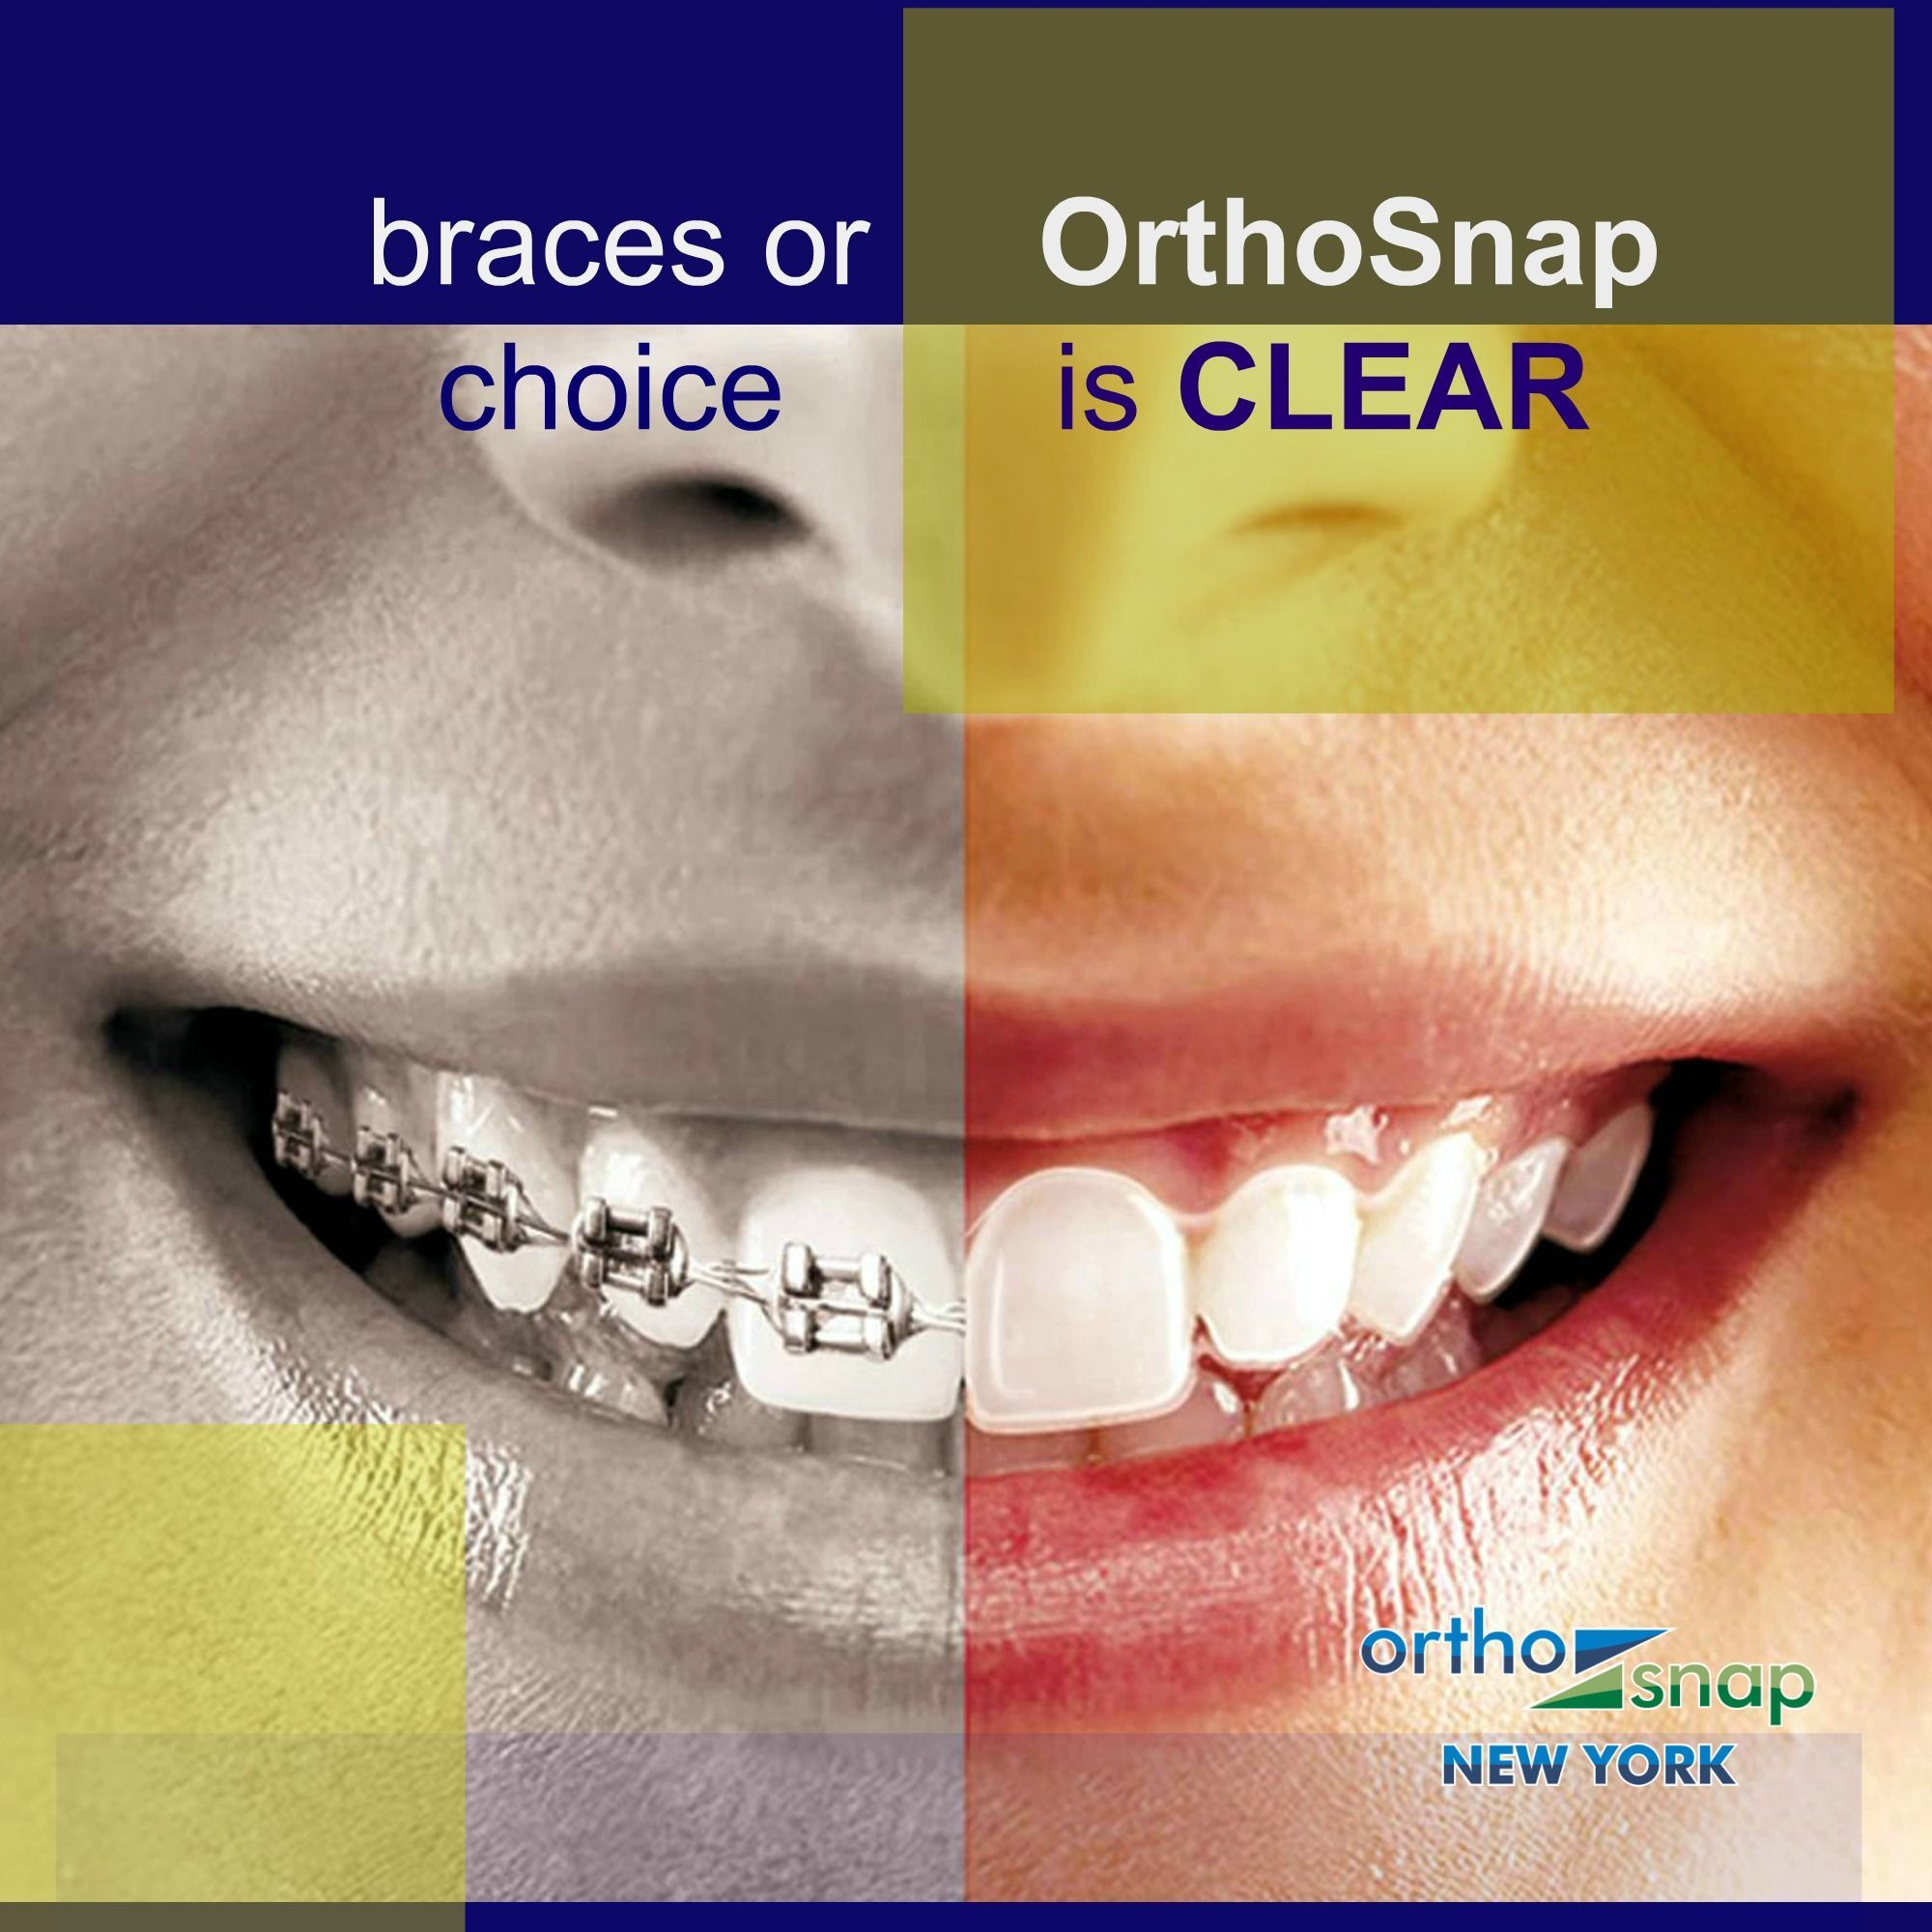 OrthoSnap is the only true alternative to traditional